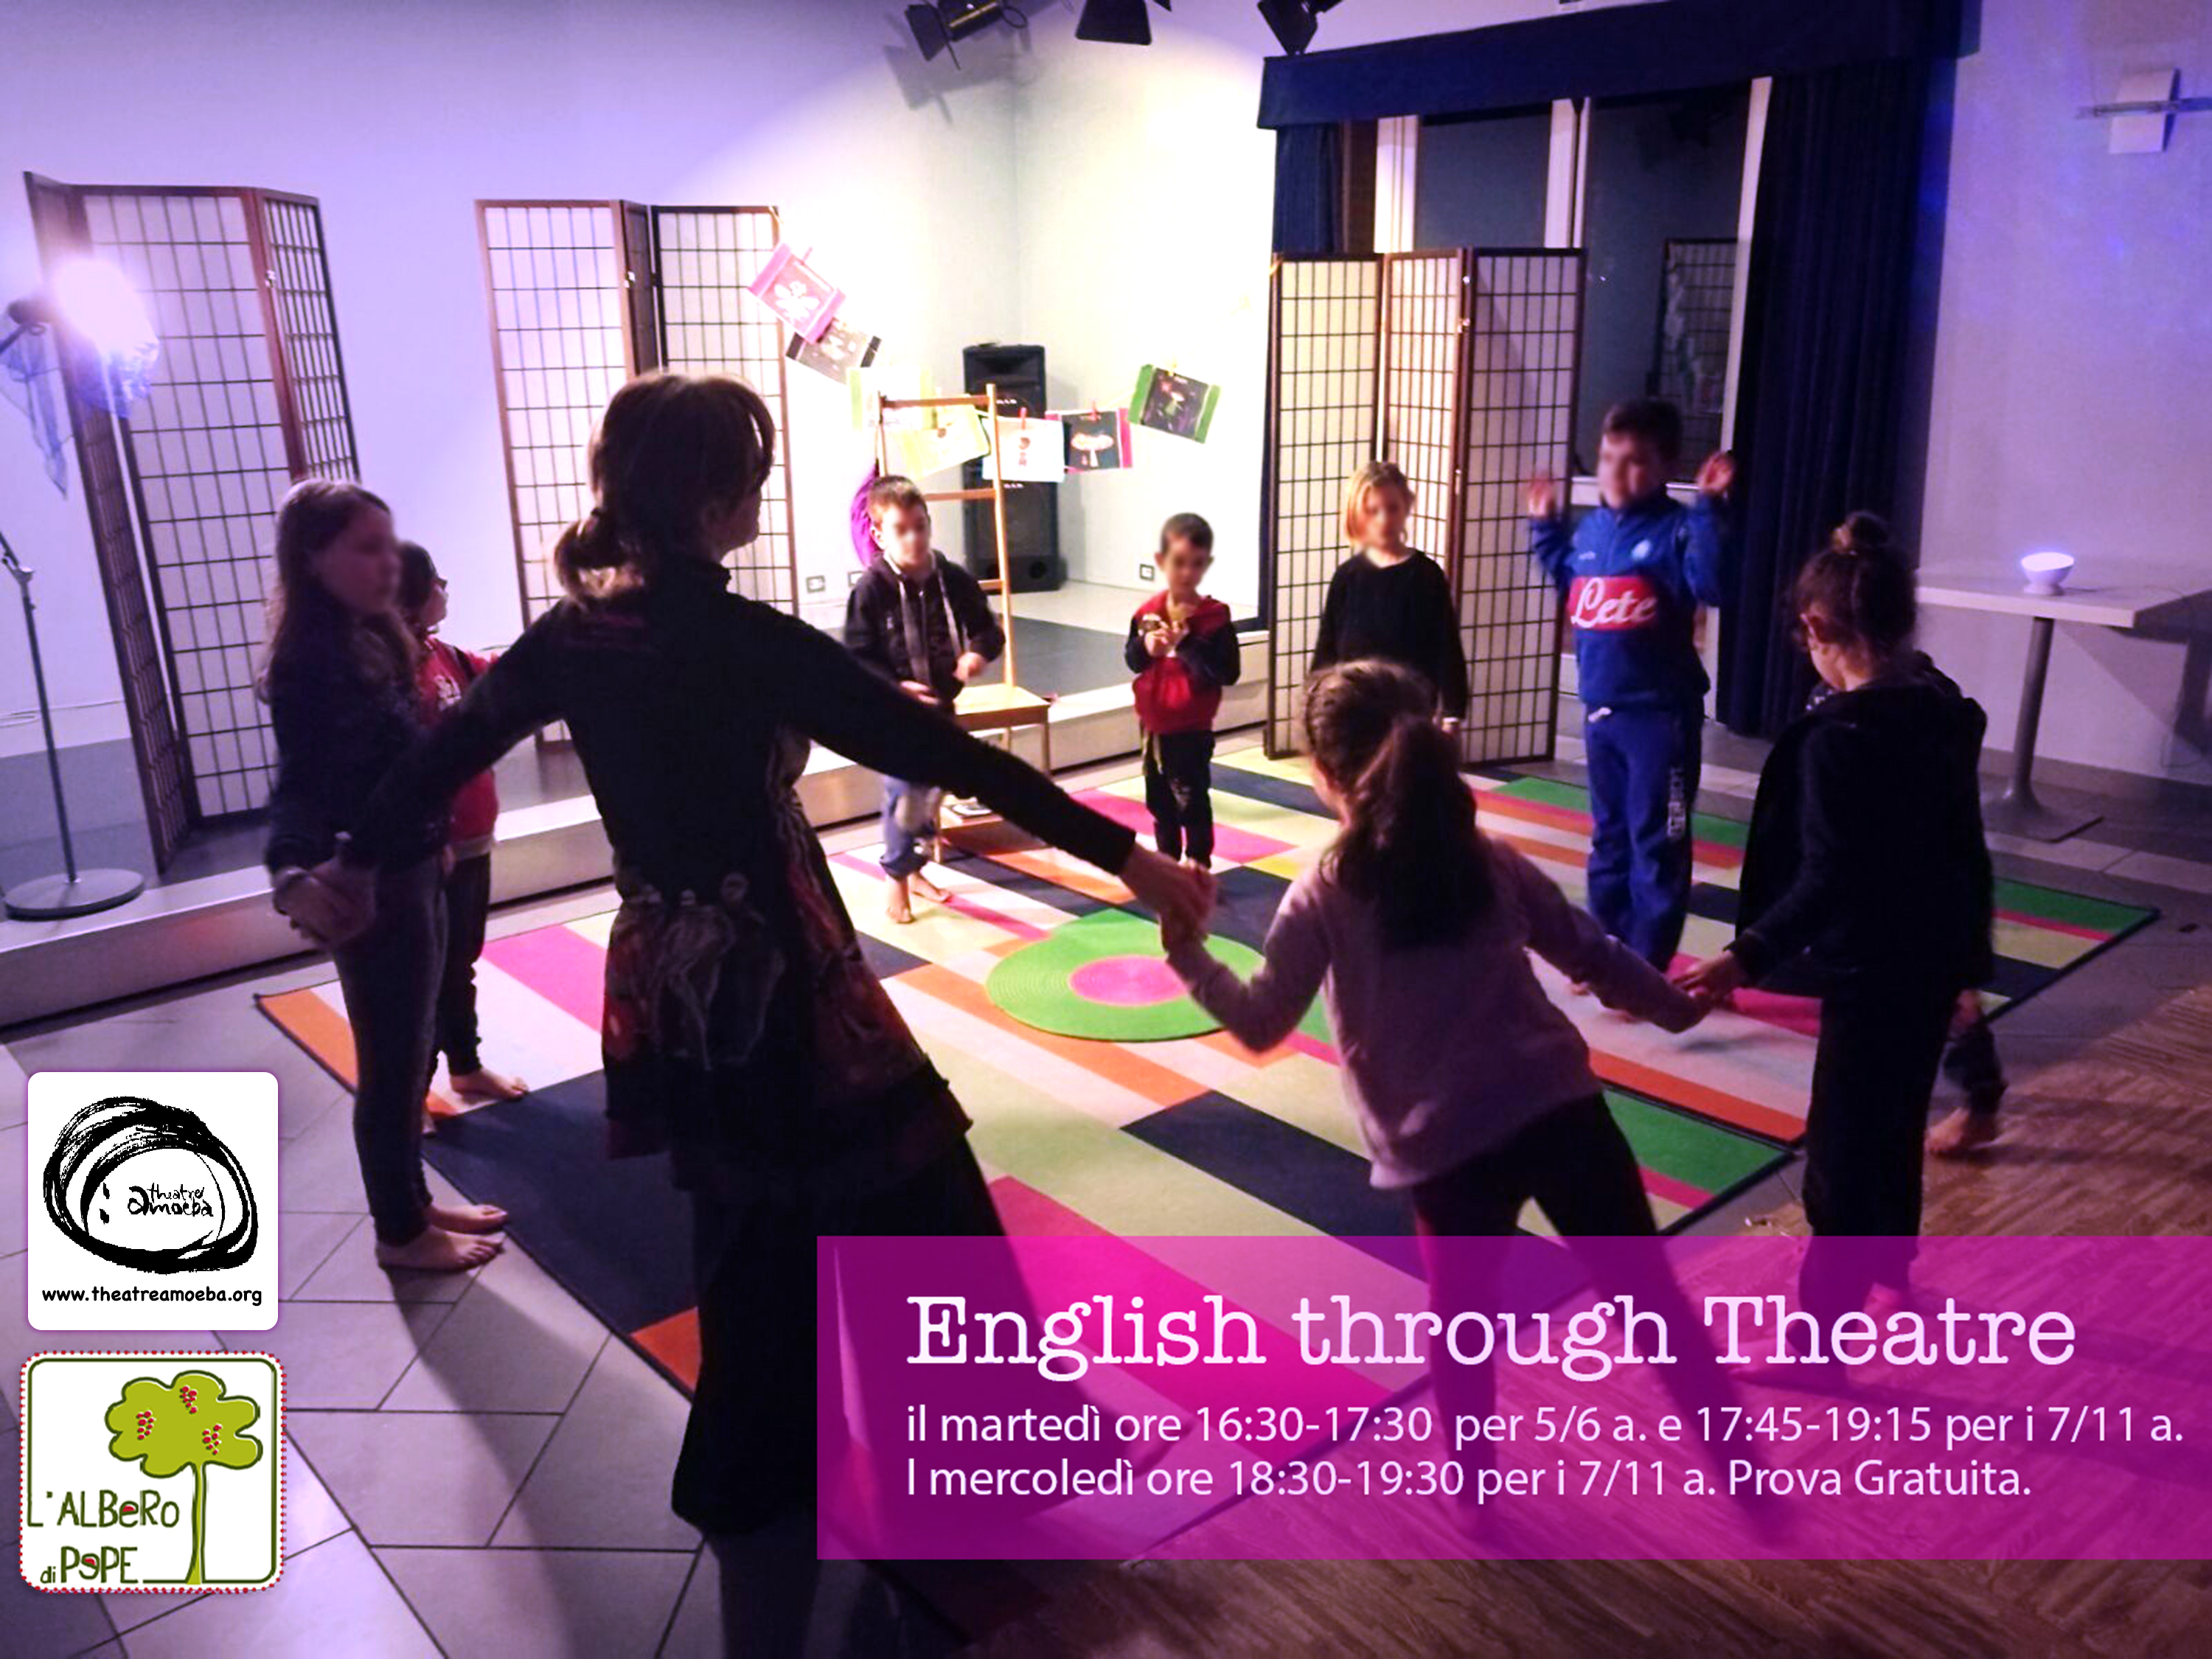 English through Theatre